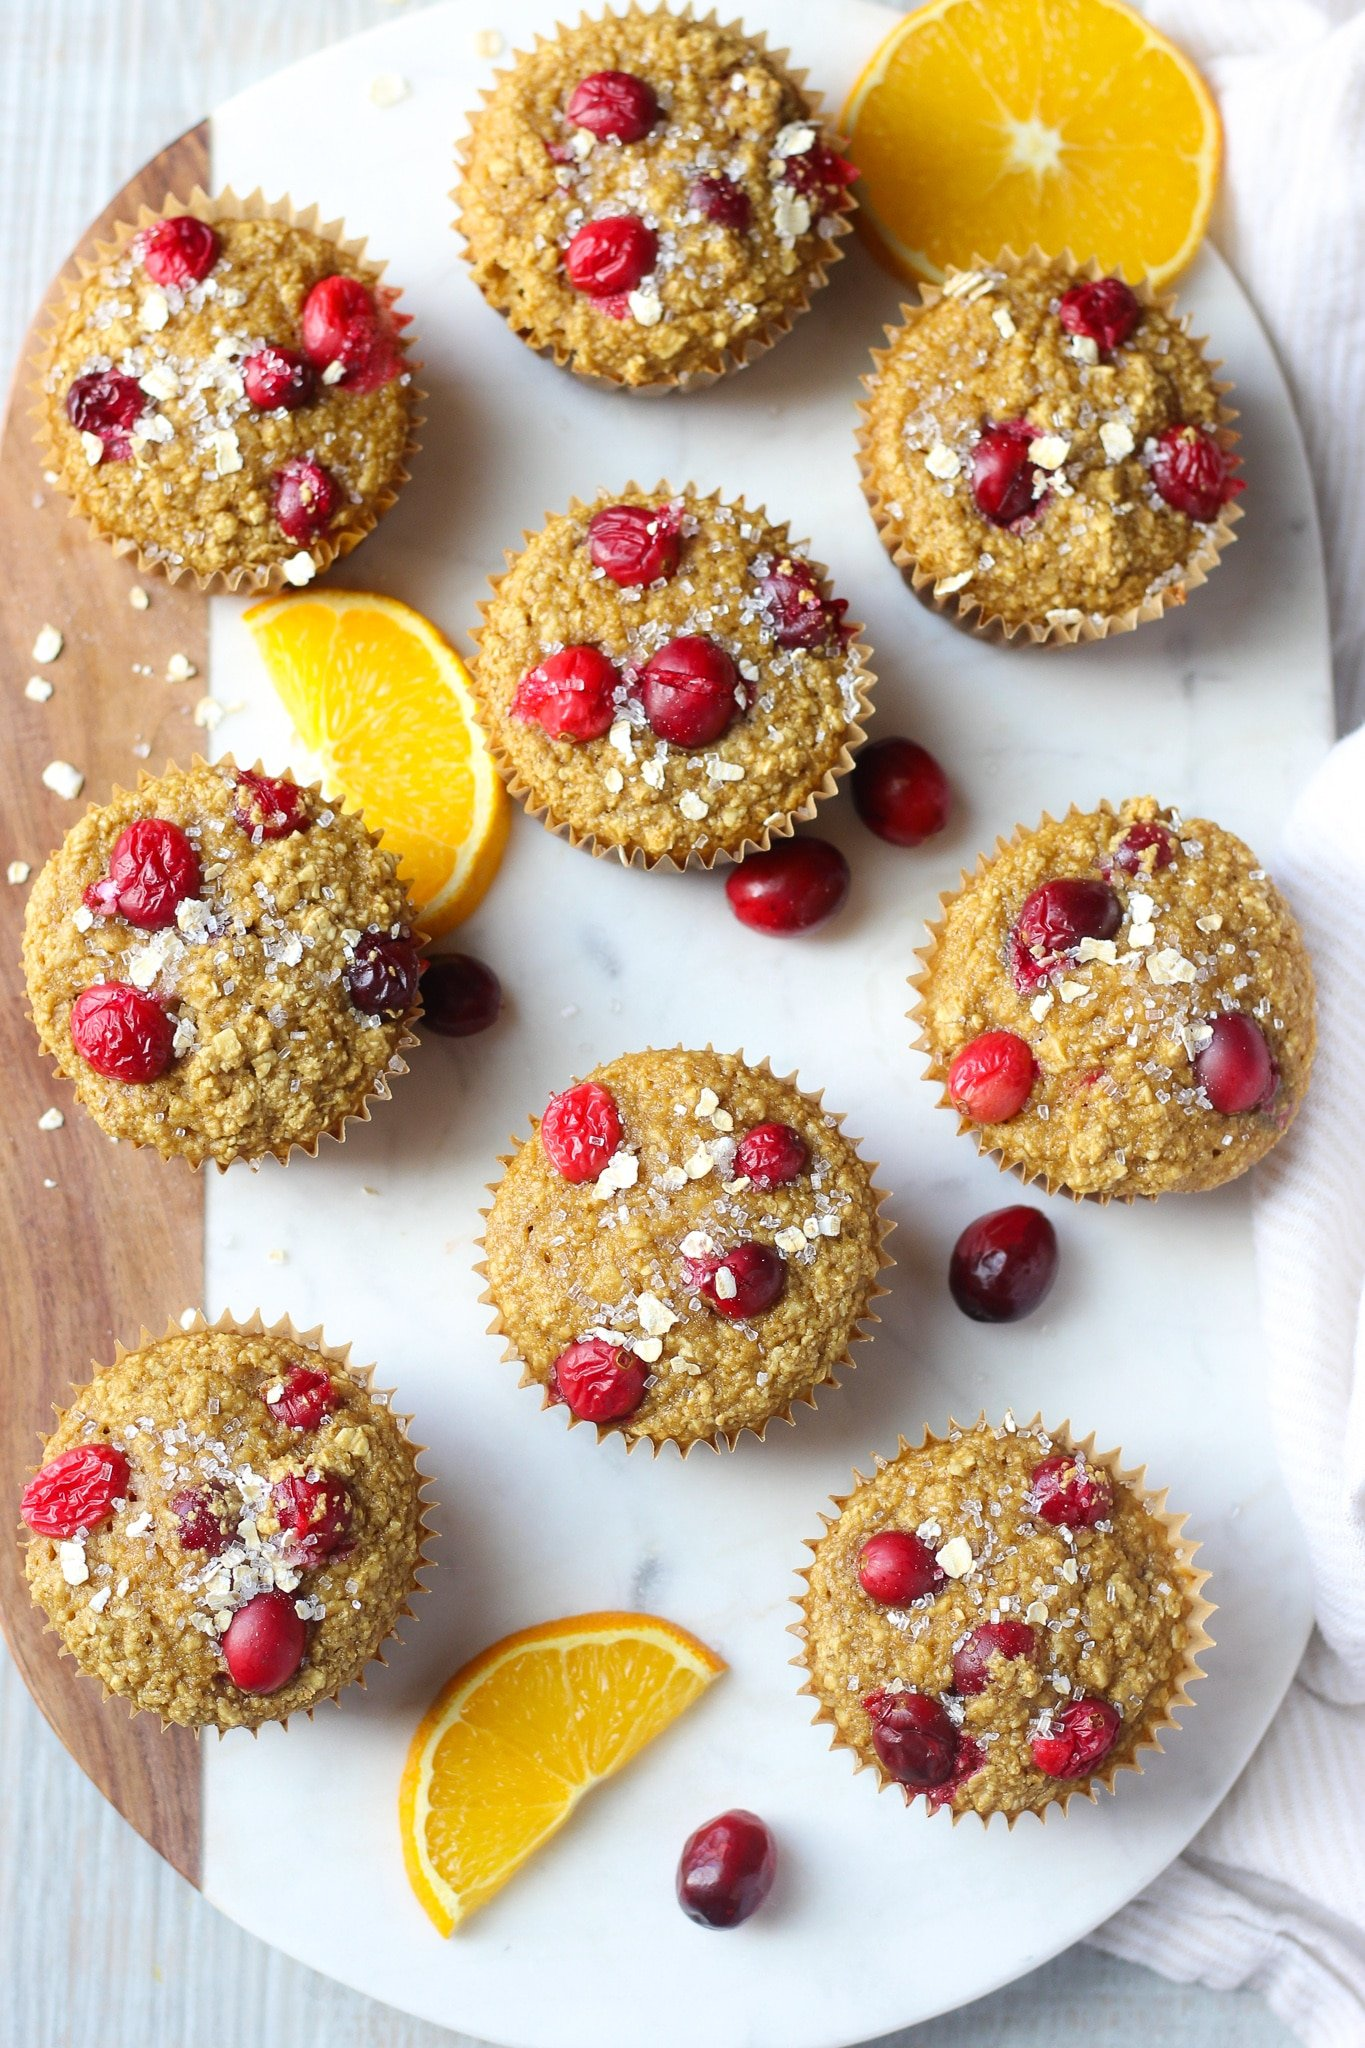 Muffins topped with fresh cranberries